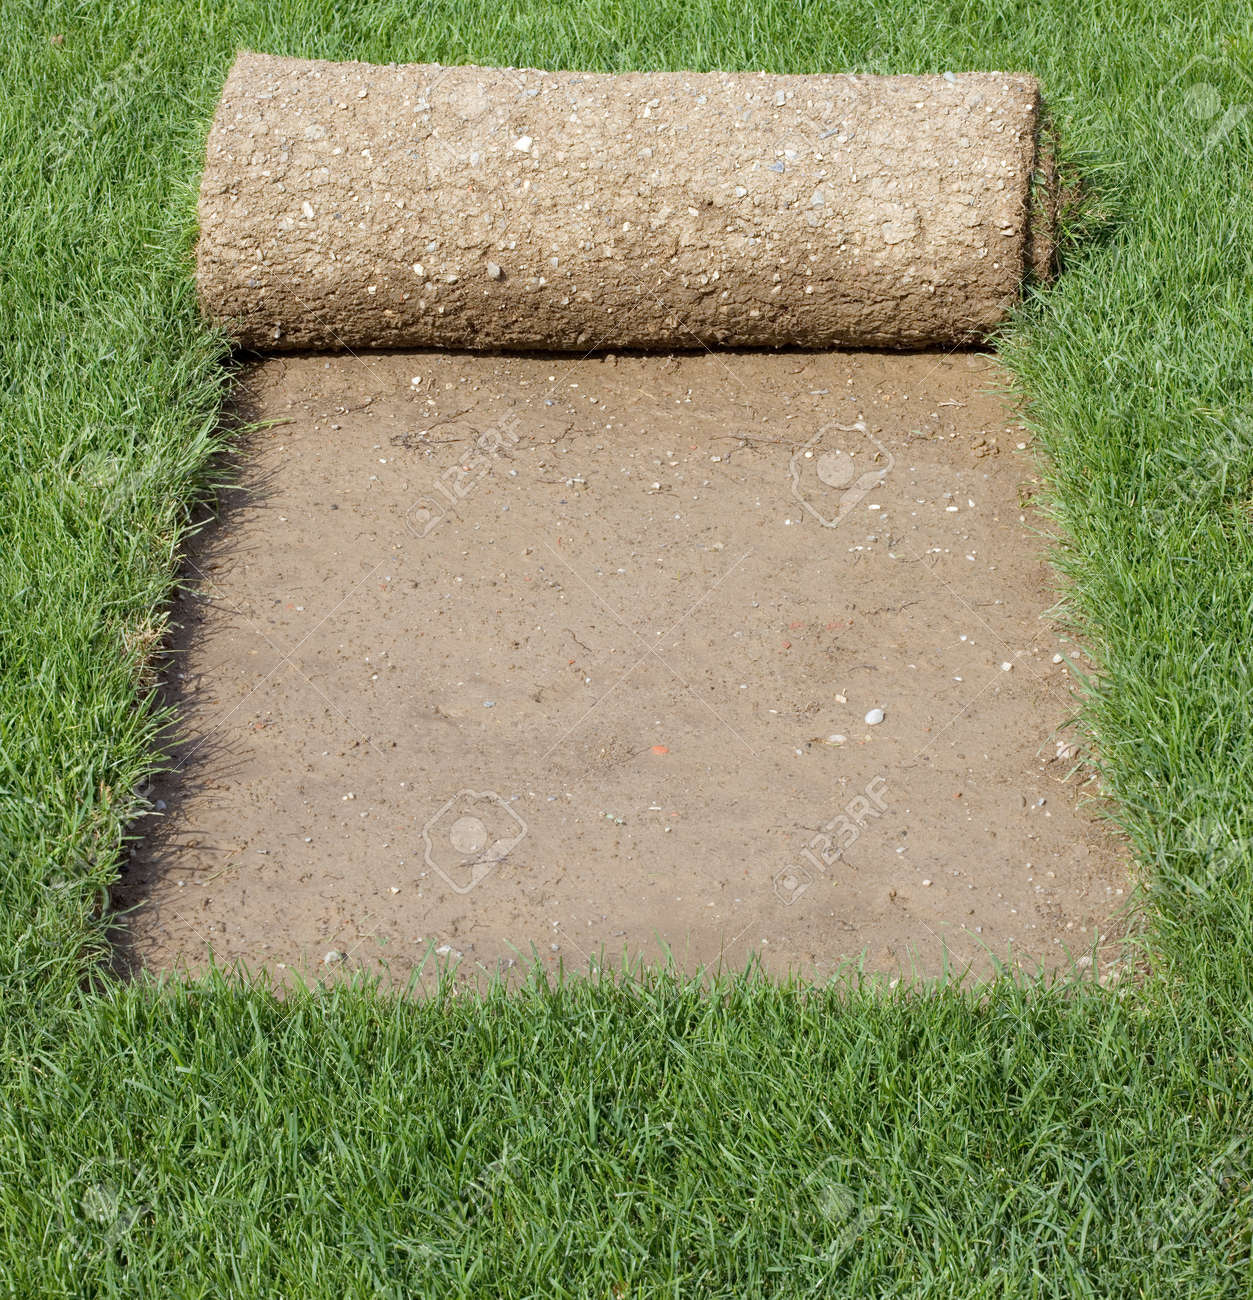 Grass Carpet Rolls Peeled from Sod Standard-Bild - 13926557